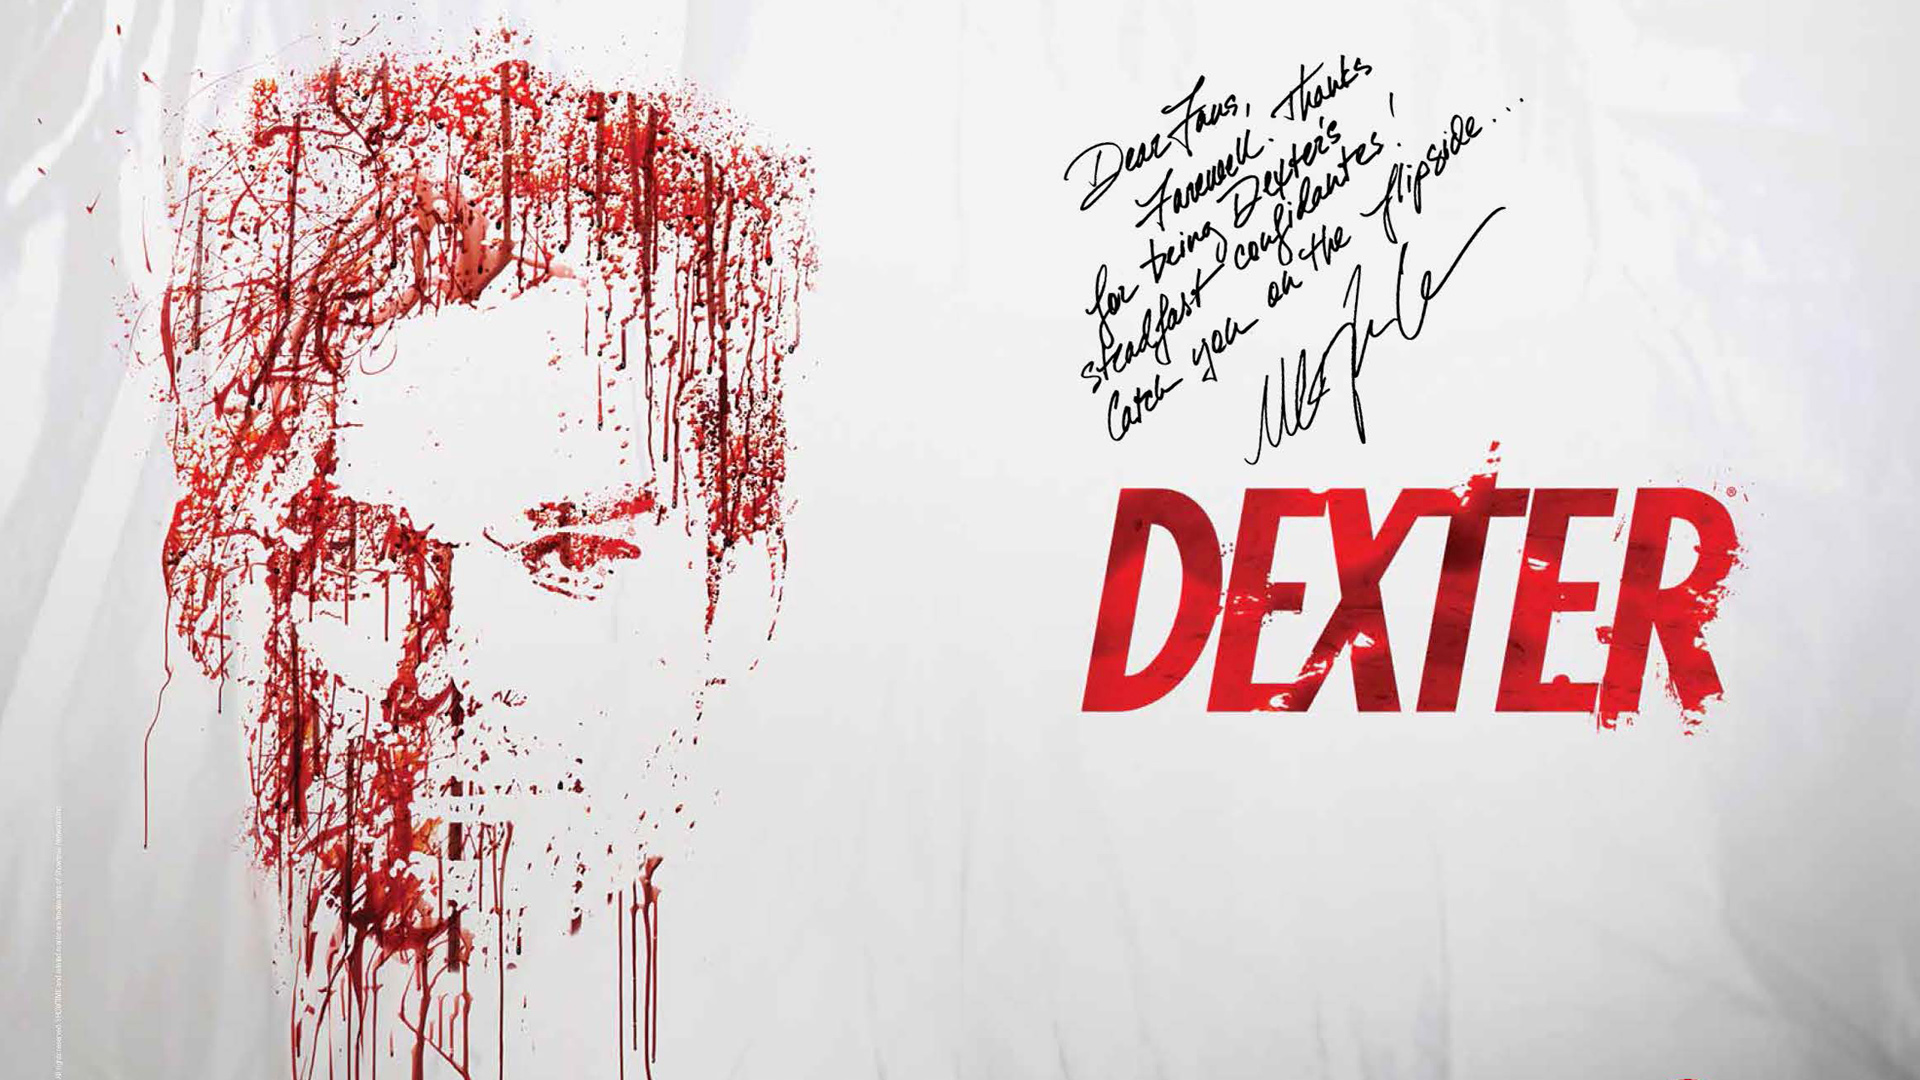 Dexter Season 8 2013 1832.04 Kb